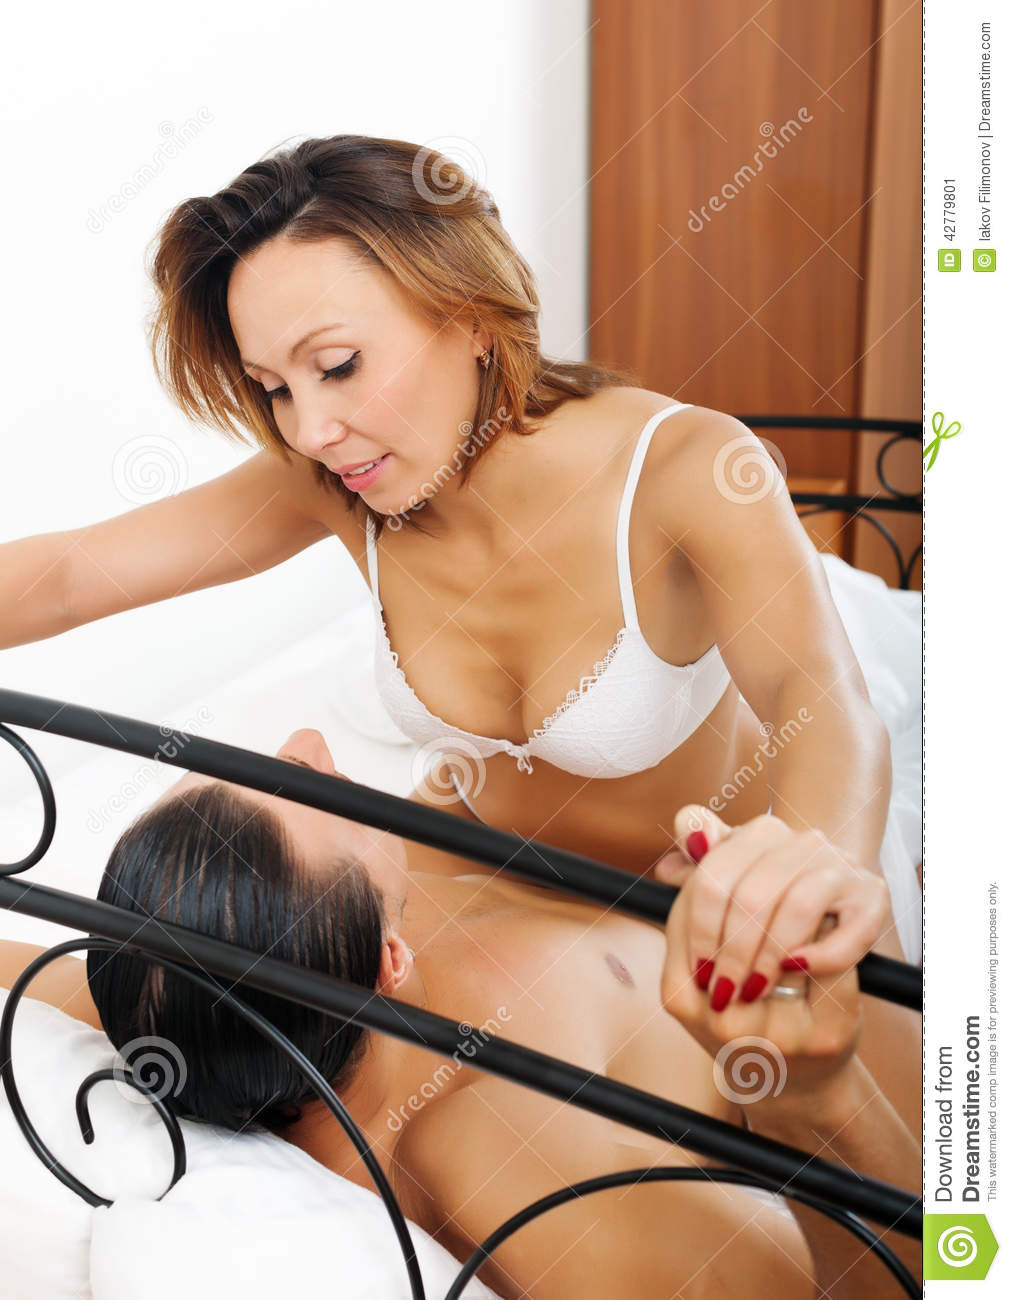 Brunette Woman Having Sex With Man Stock Photo - Image -2358